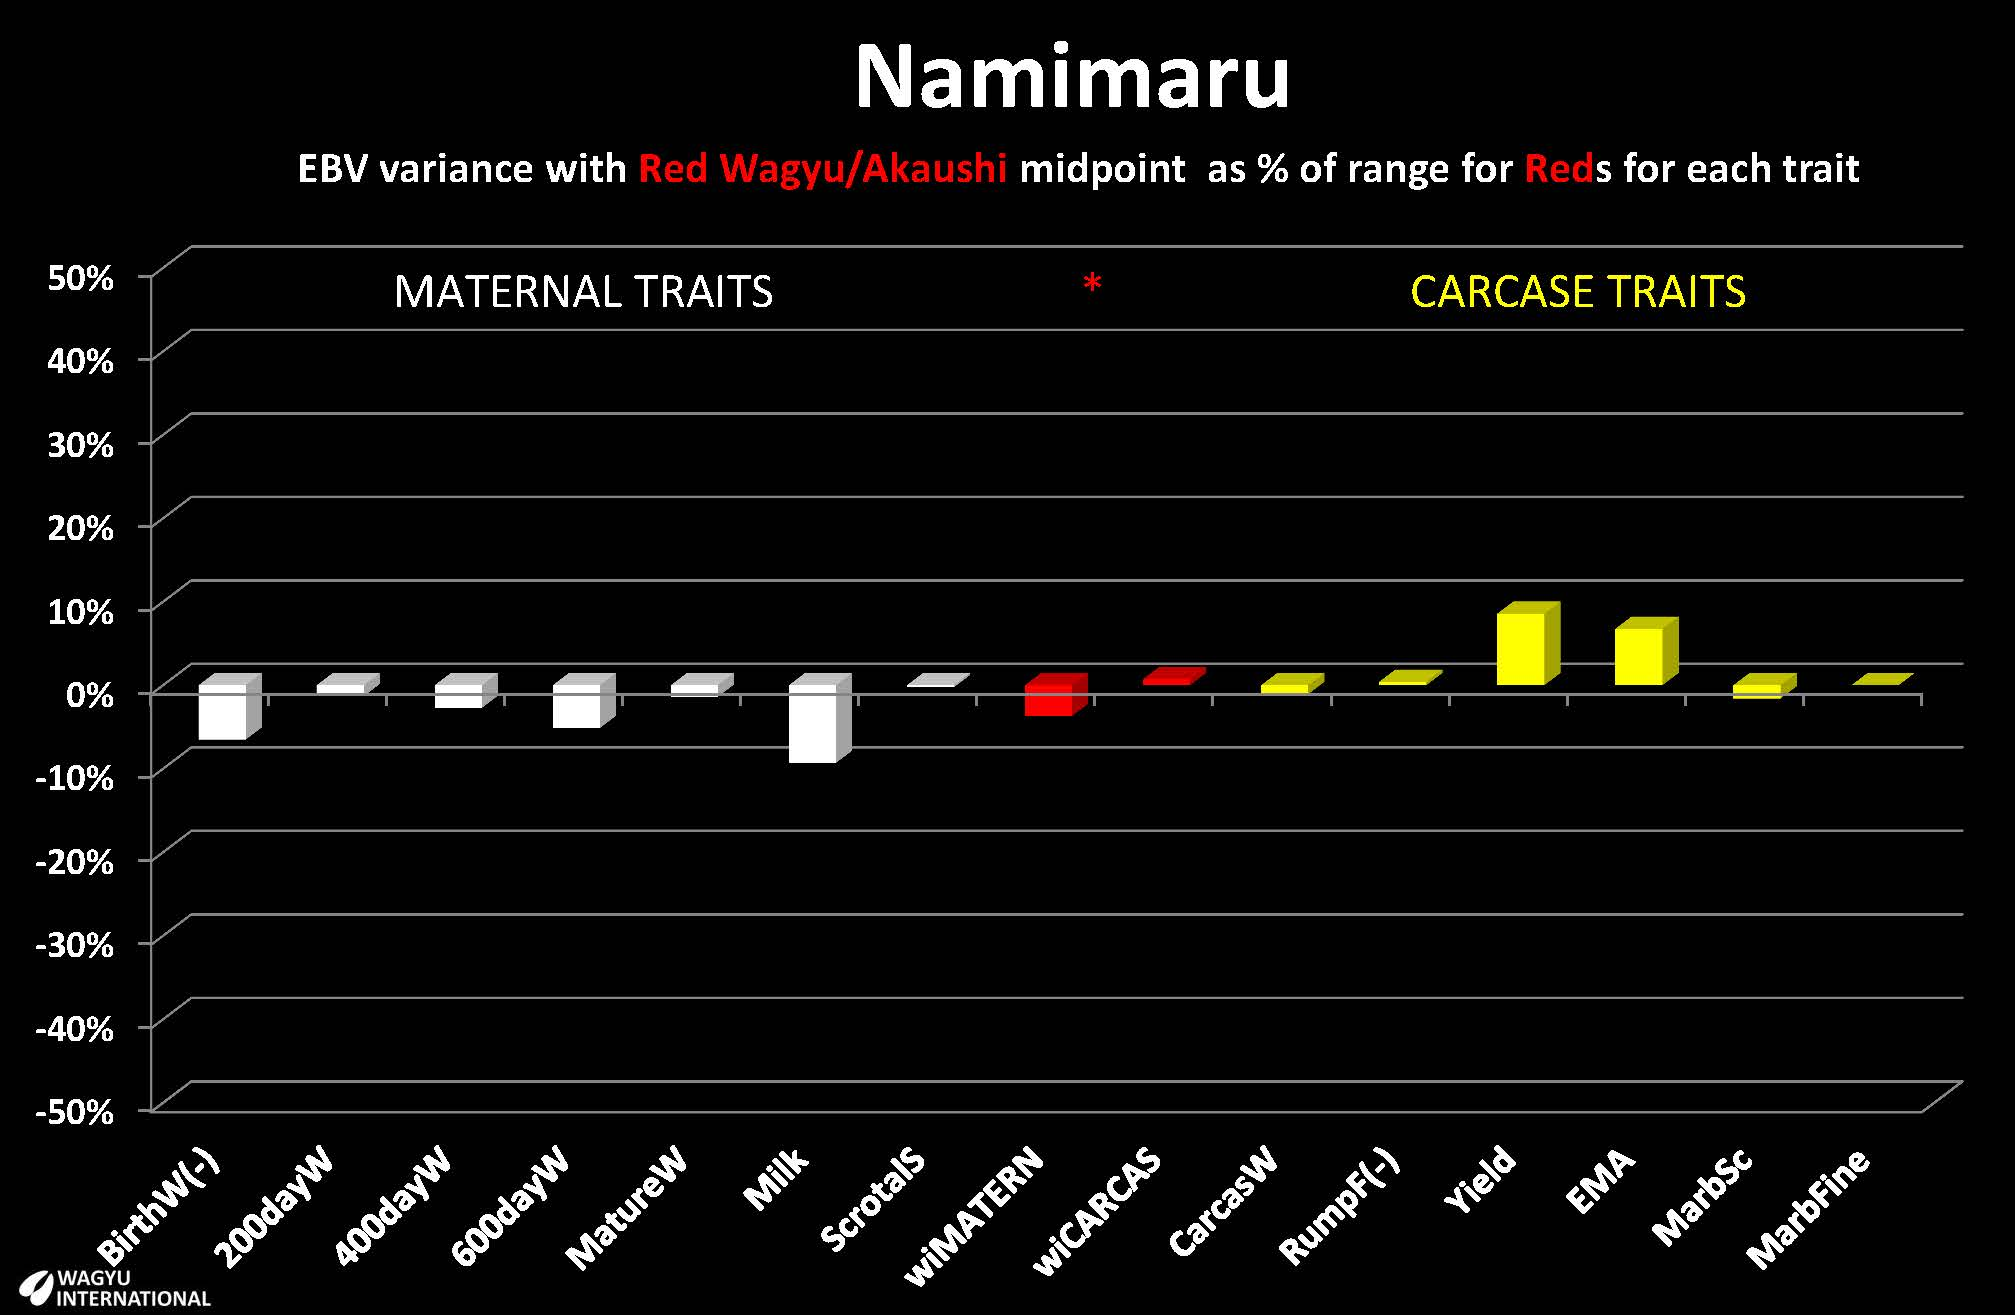 Breedplan EBVs presented by Wagyu International for Japan sire Namimaru Red Wagyu/Akaushi sire in Japan